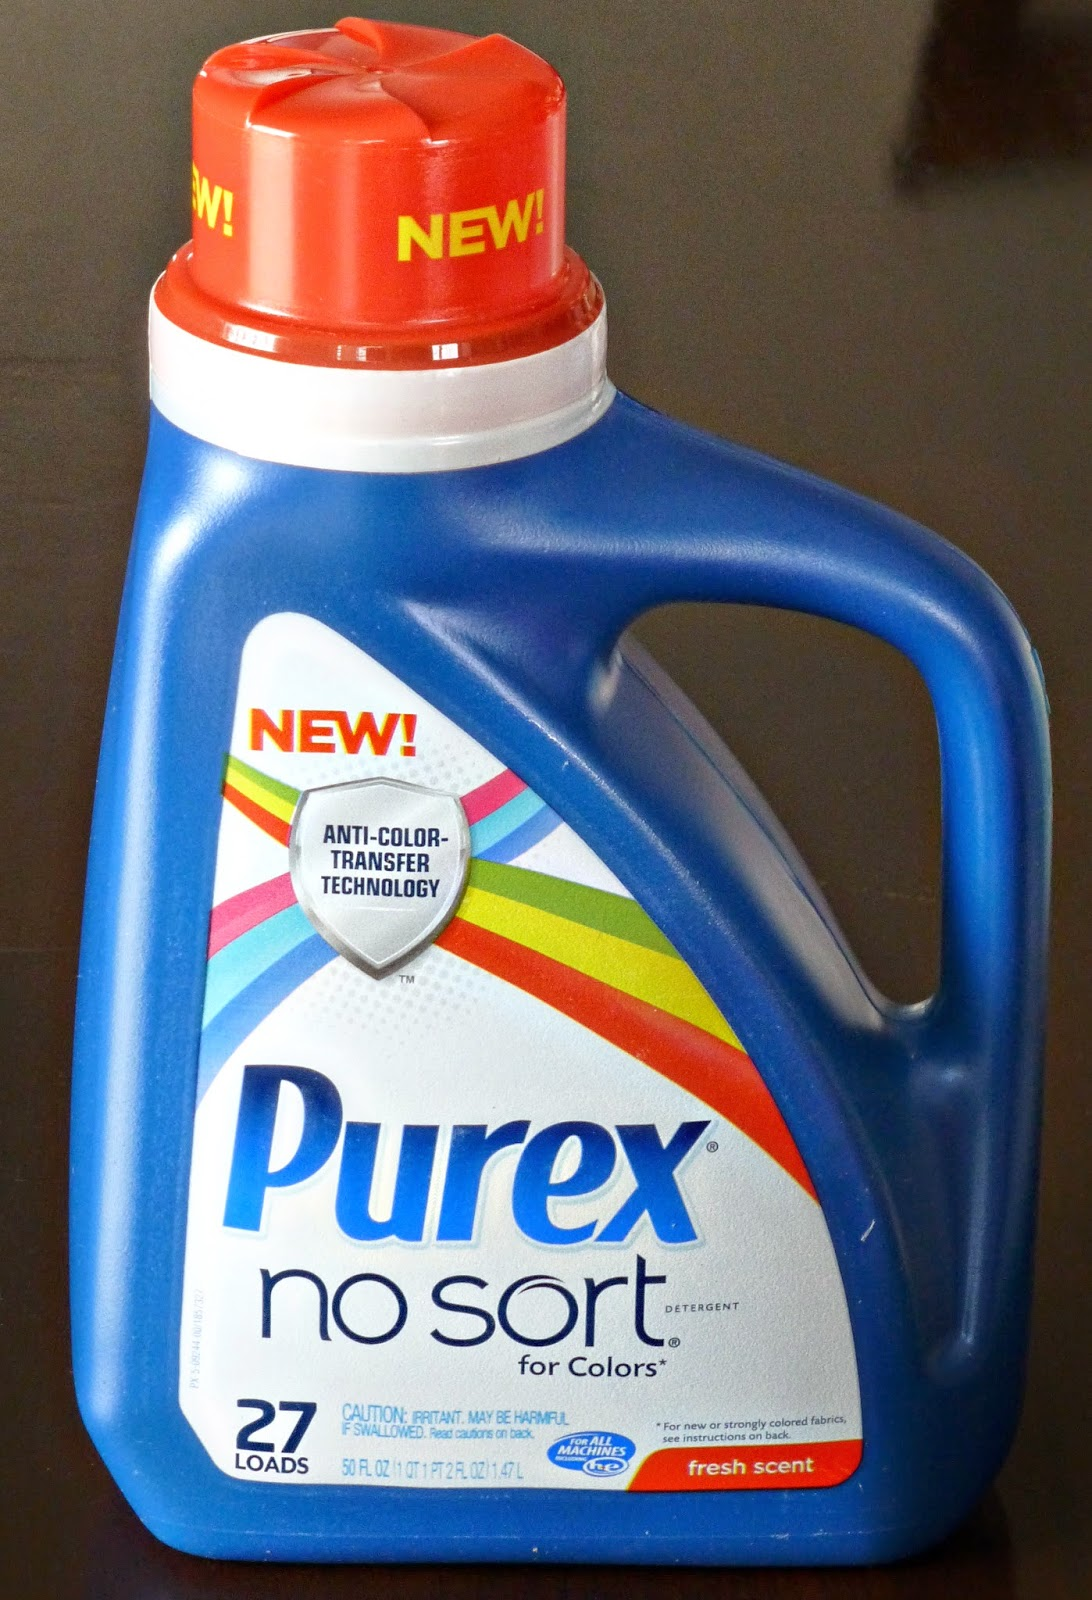 Purex No Sort For Colors Laundry Detergent